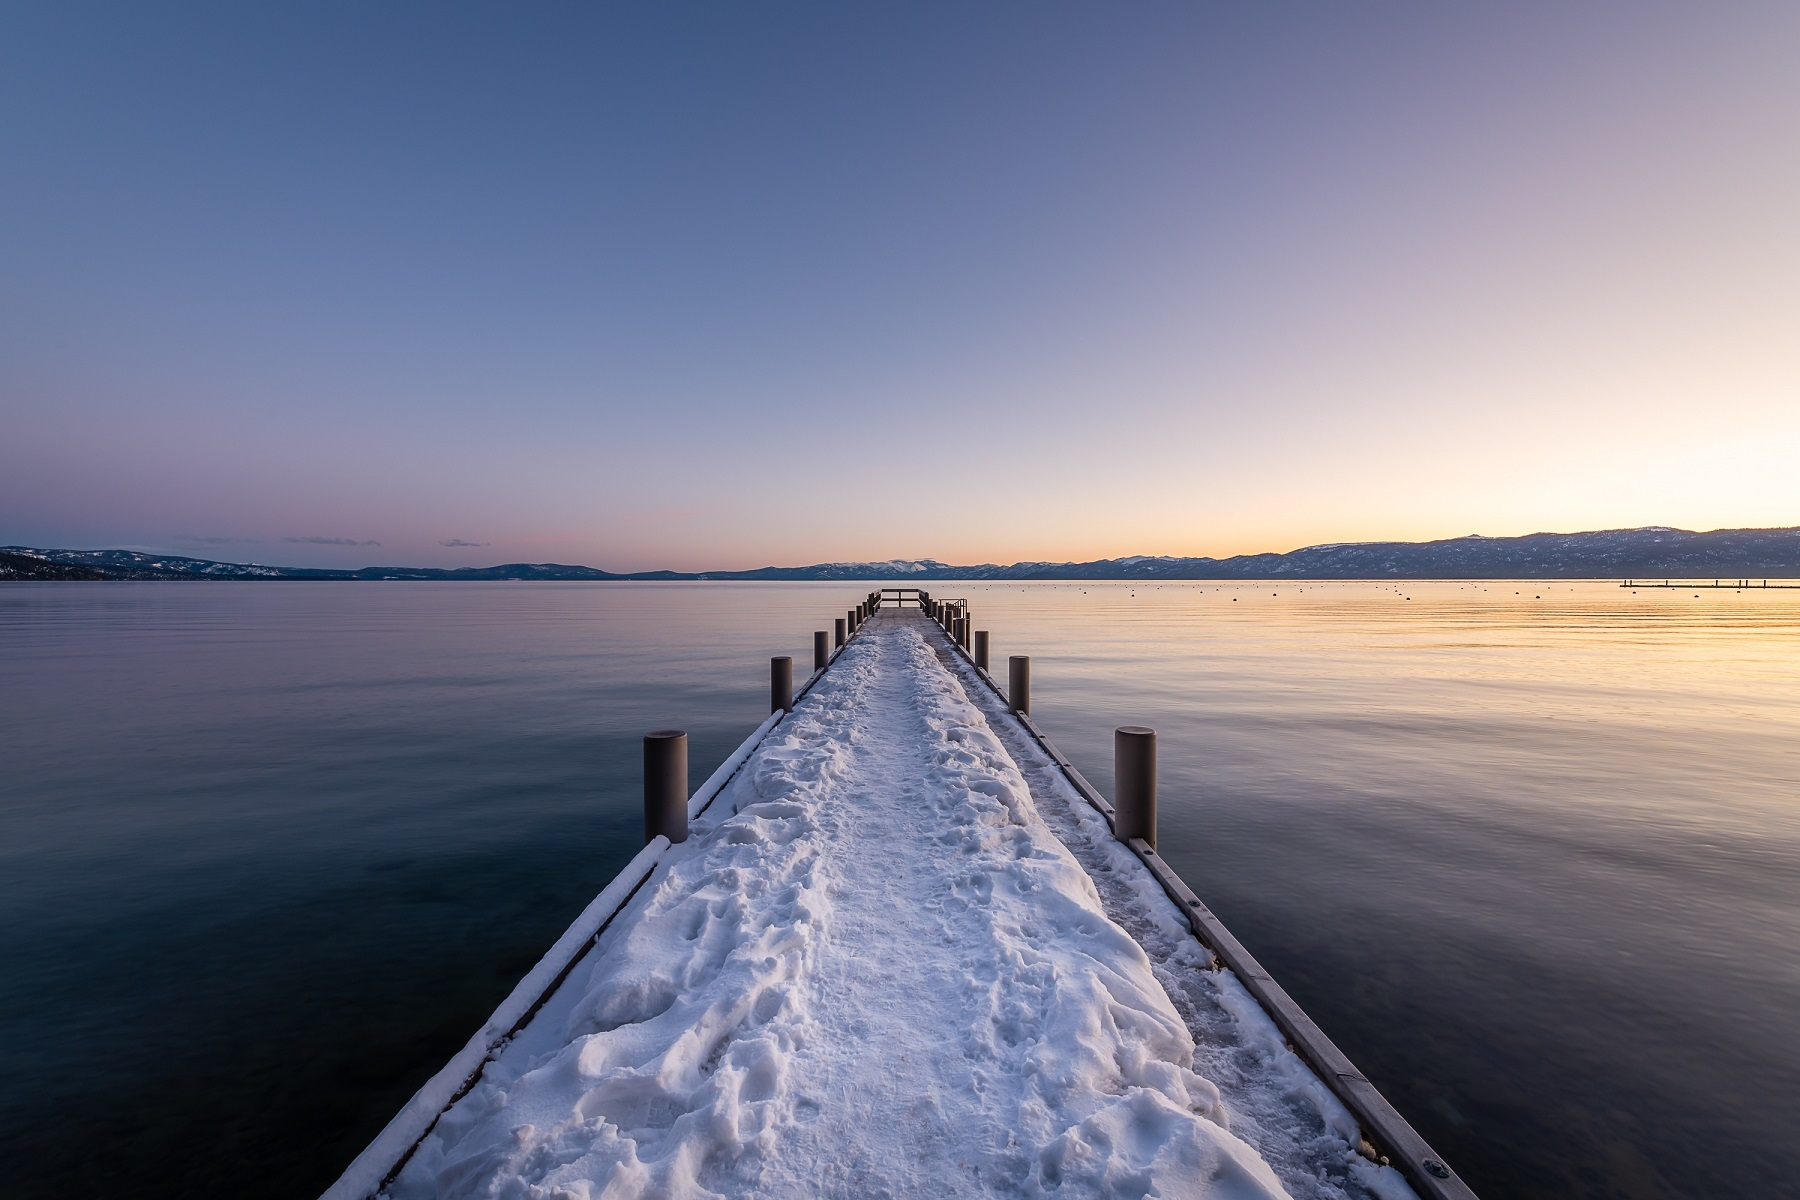 Photographing the many beautiful sites around Lake Tahoe.